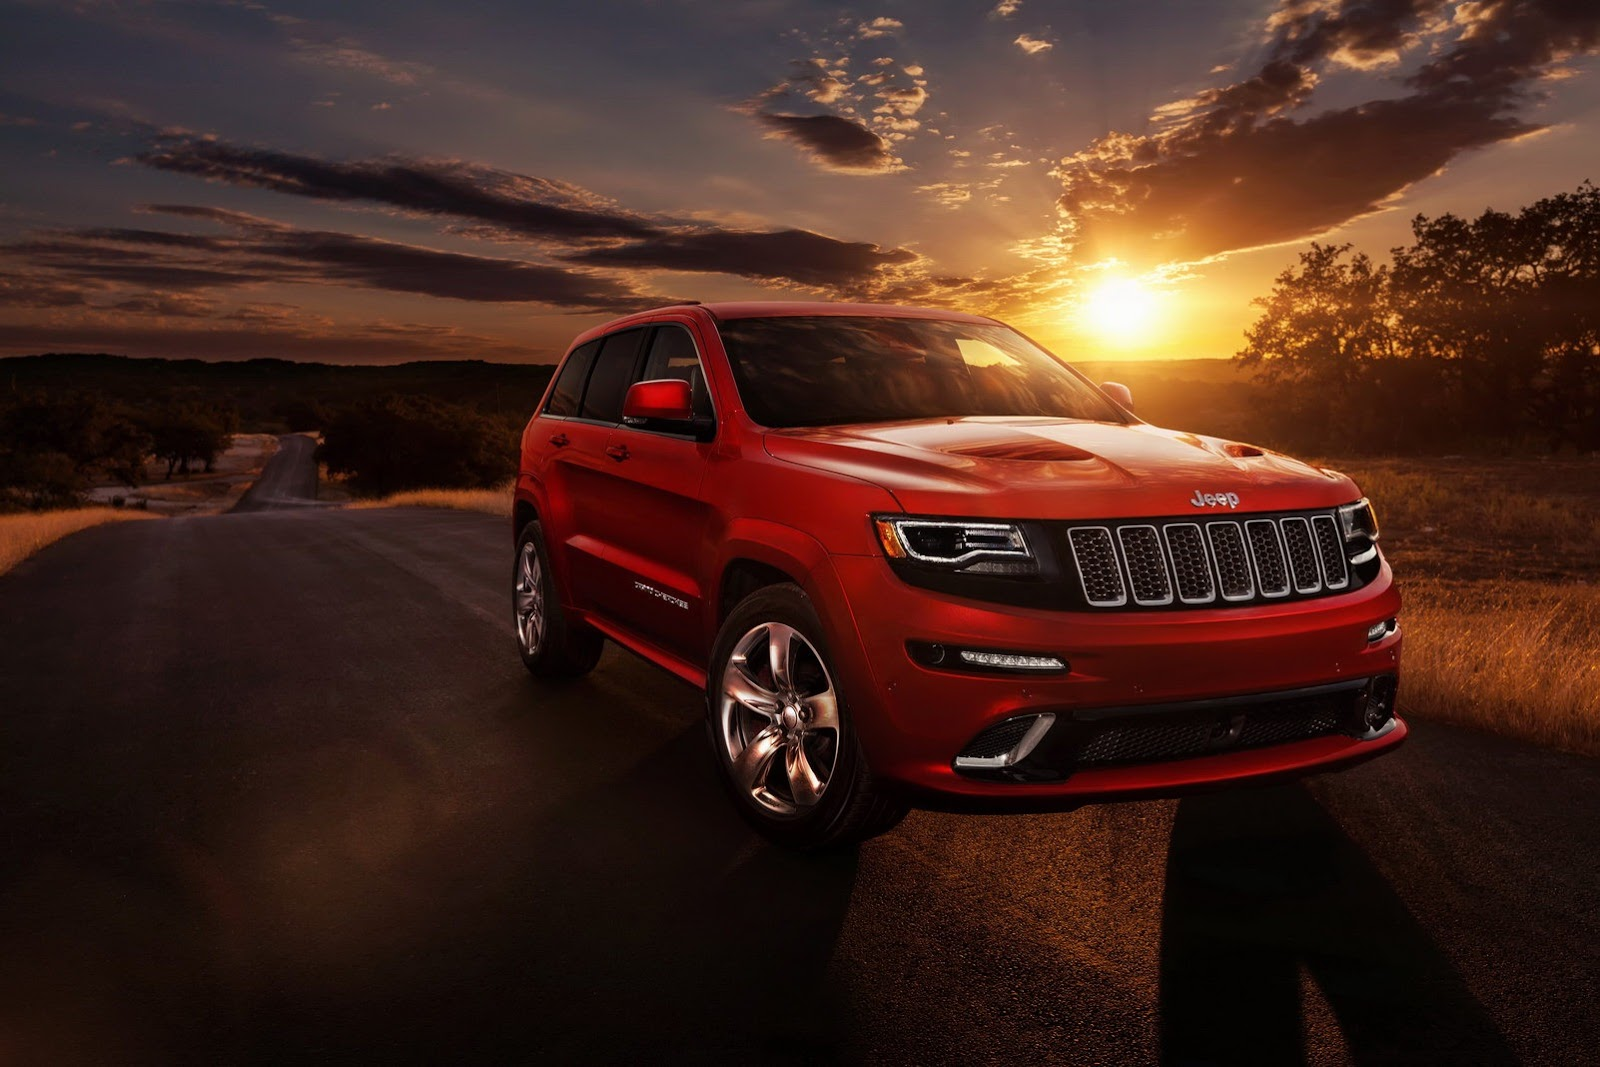 2014 Jeep Grand Cherokee SRT8 - AutoTribute